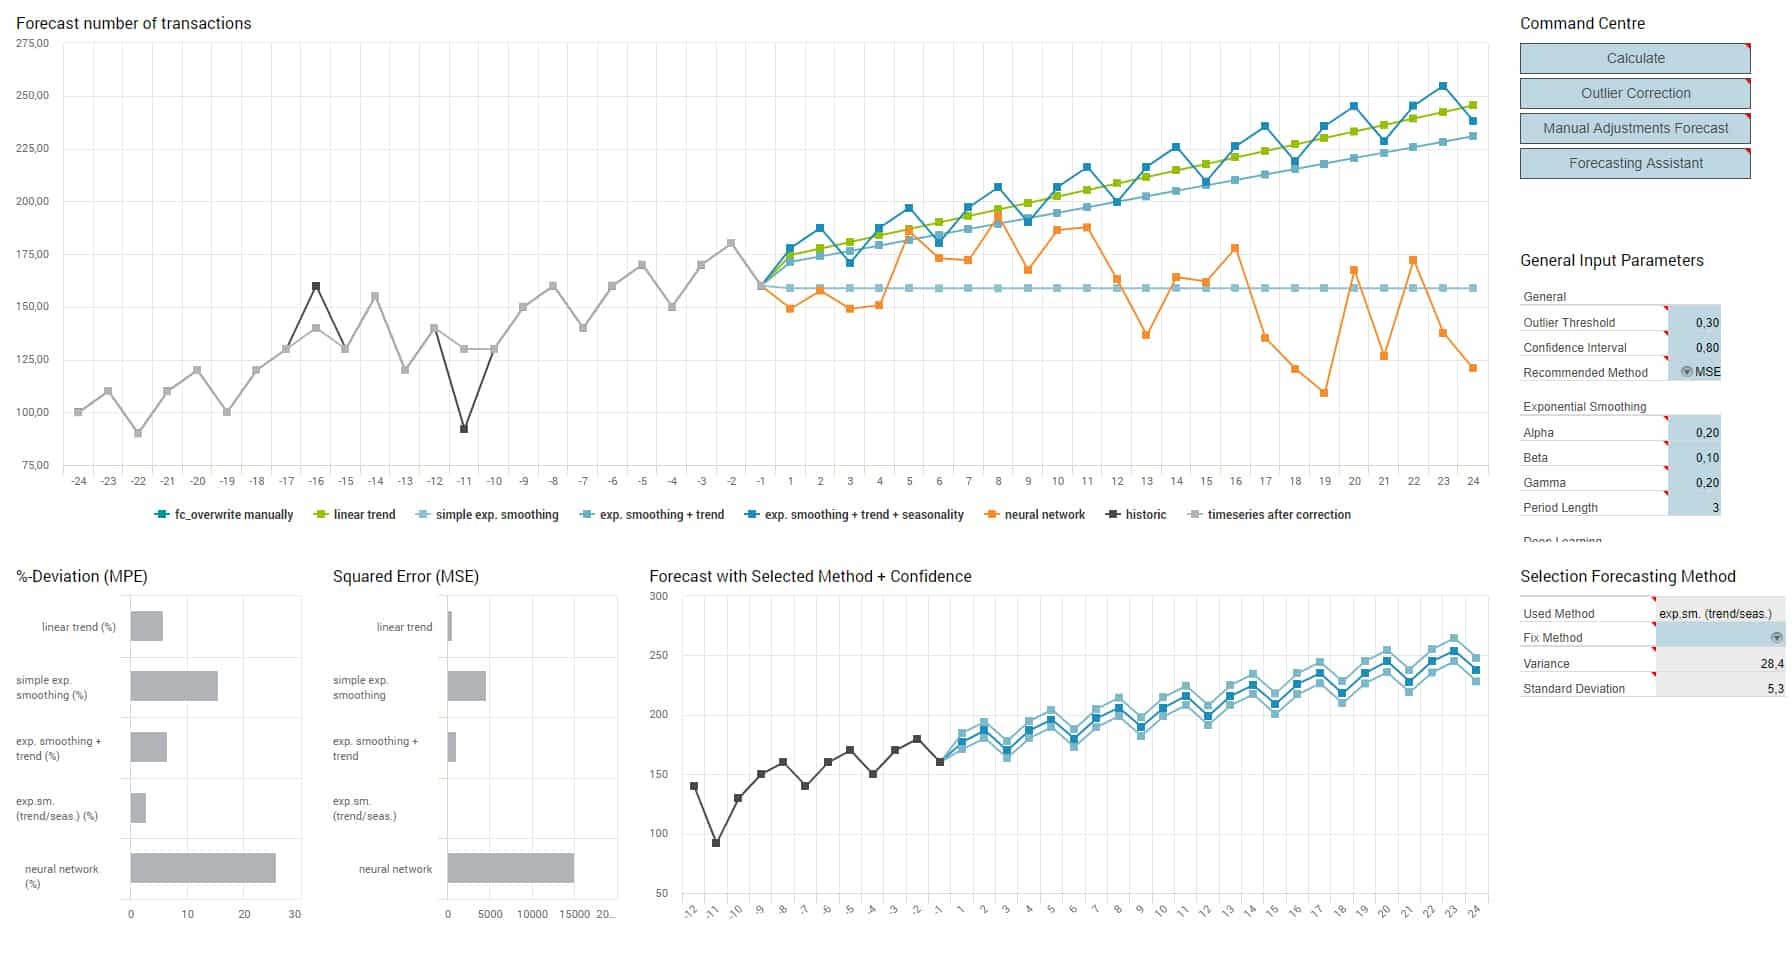 Sales Performance Forecasting Dashboard smartPM